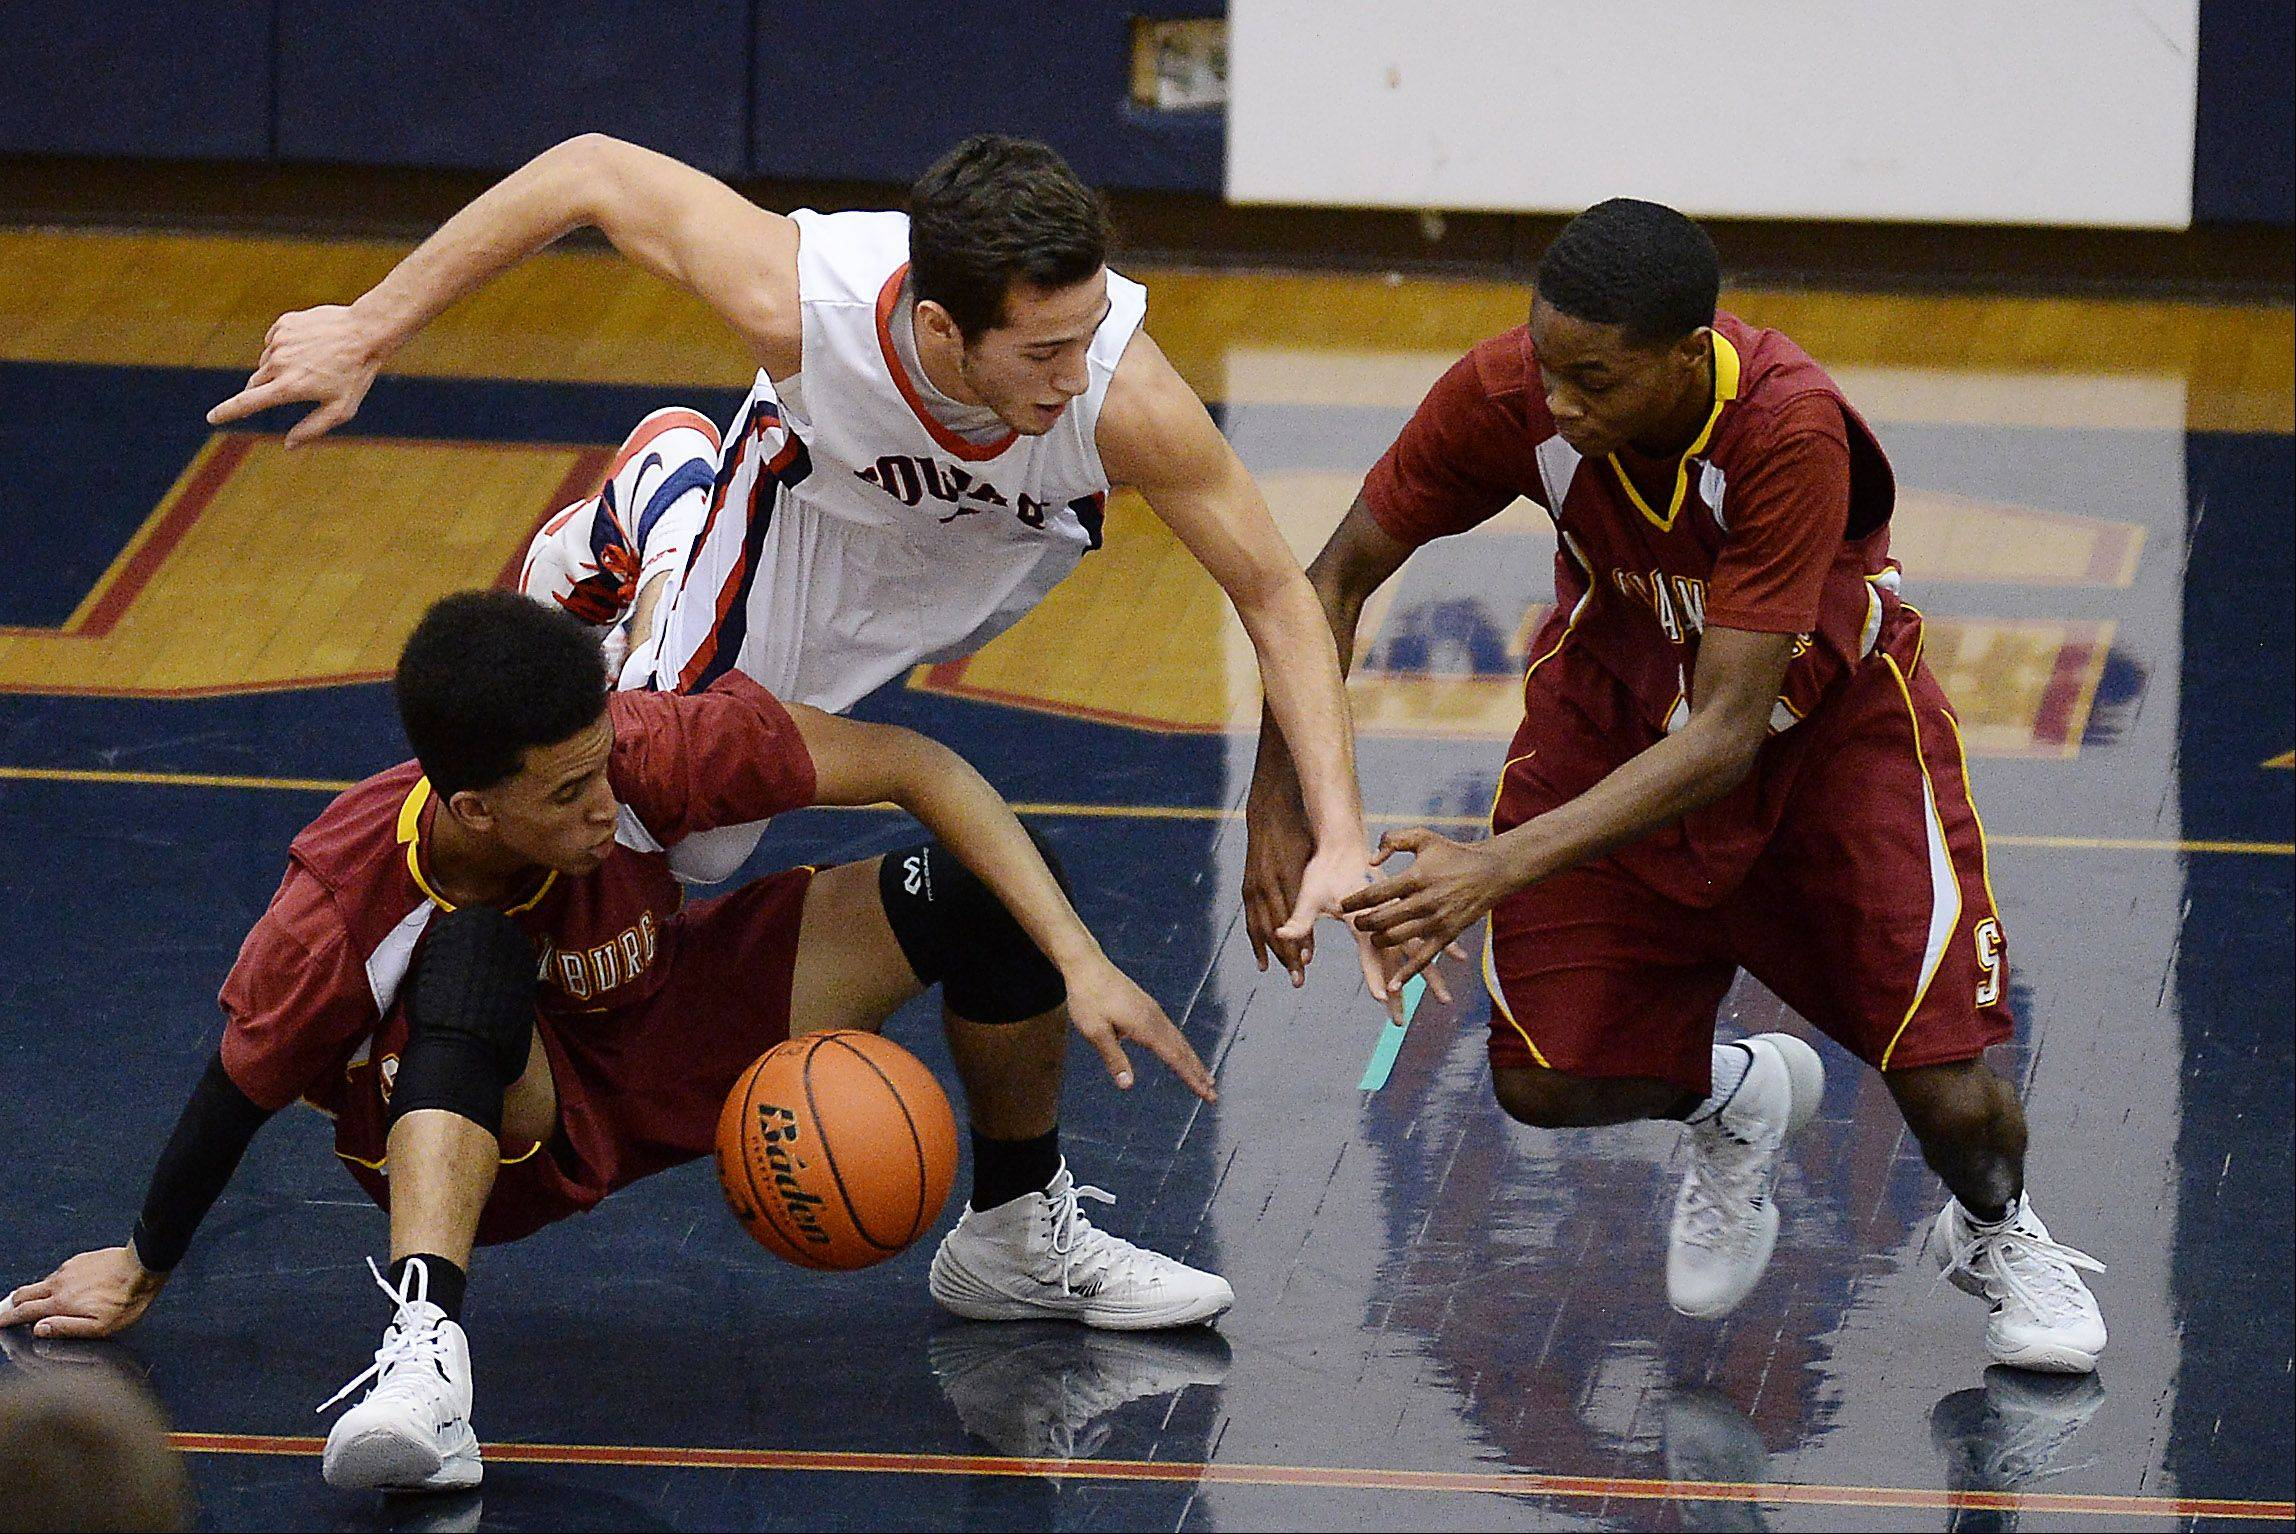 Conant's Joe Ranallo goes after a loose ball with Schaumburg's Brendan Parker and Marquis Woodard.